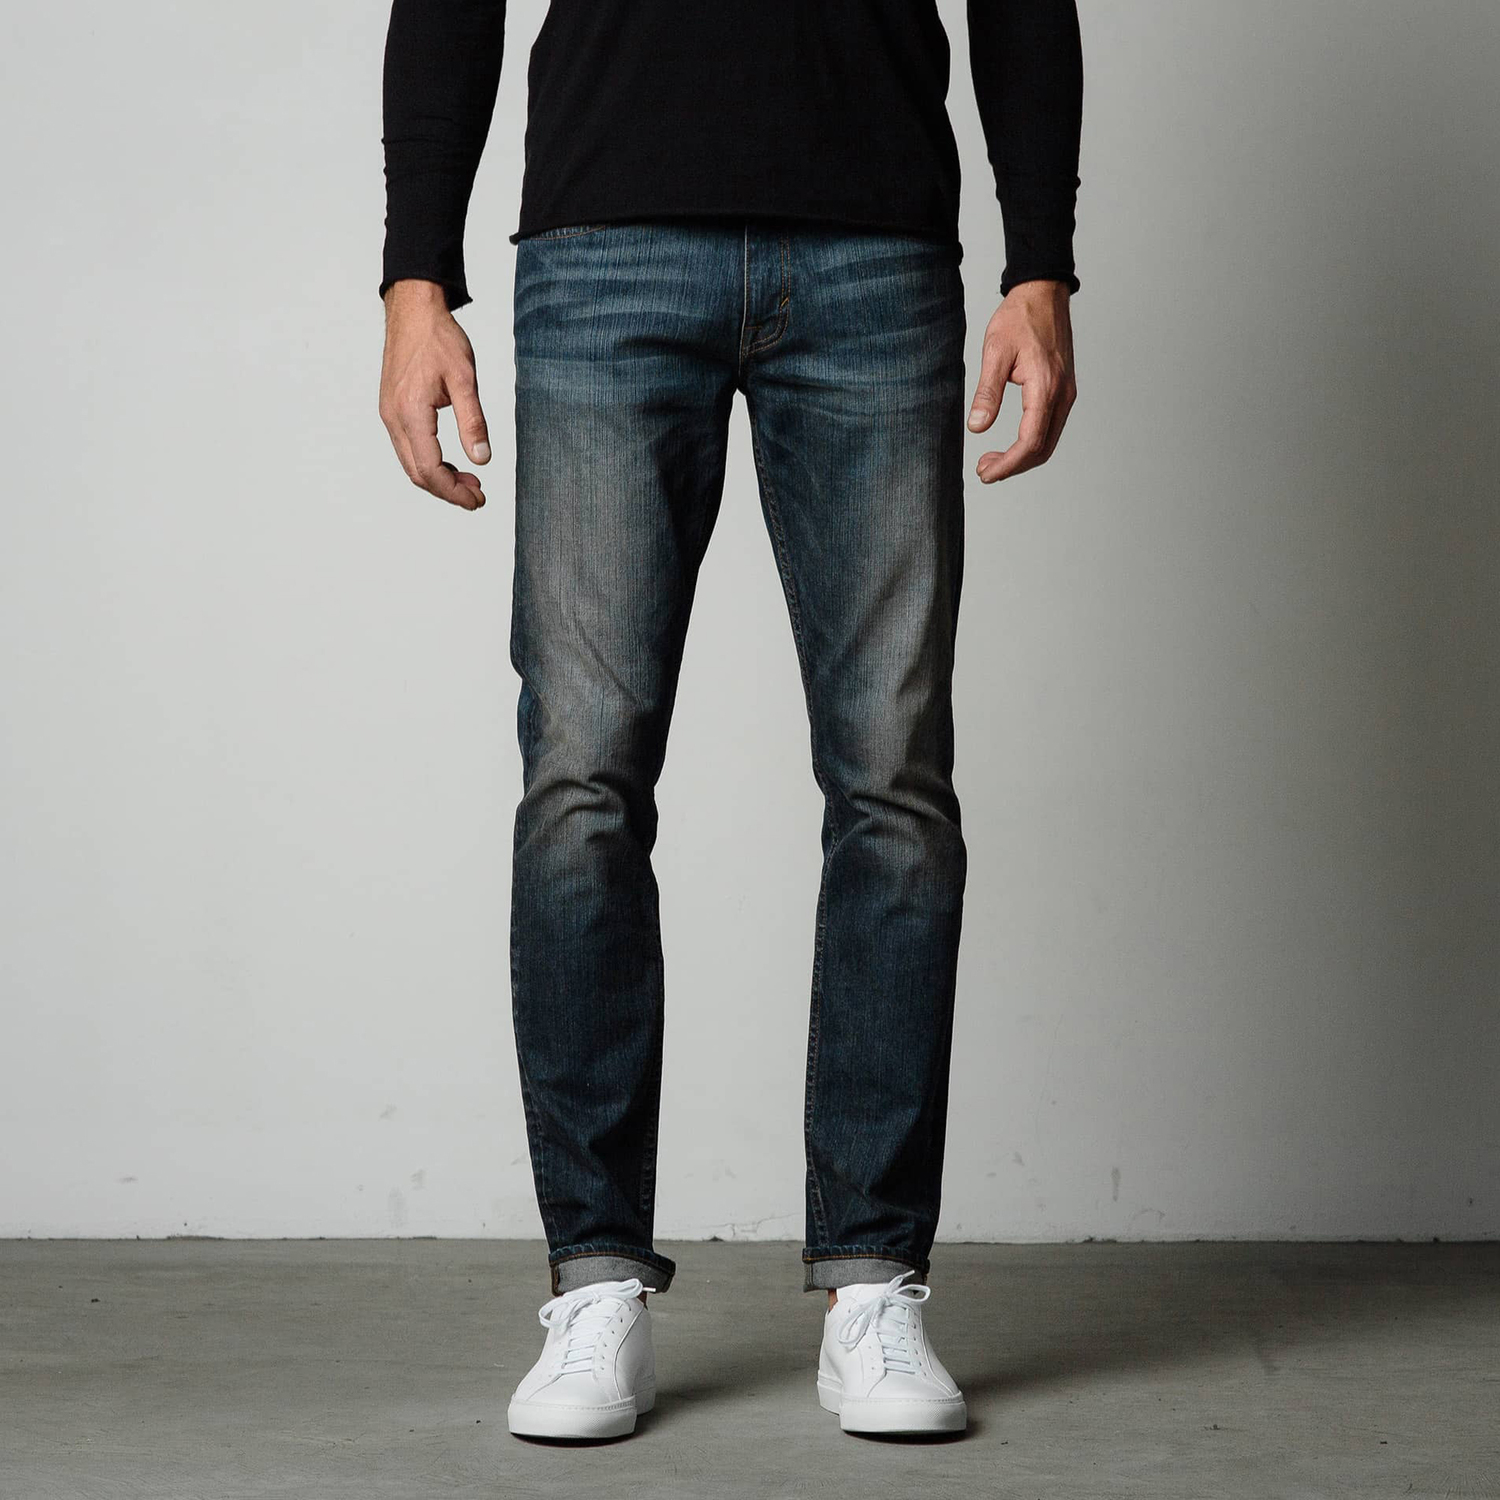 Mens Skinny Slim Jeans In Dark Worn | DSTLD